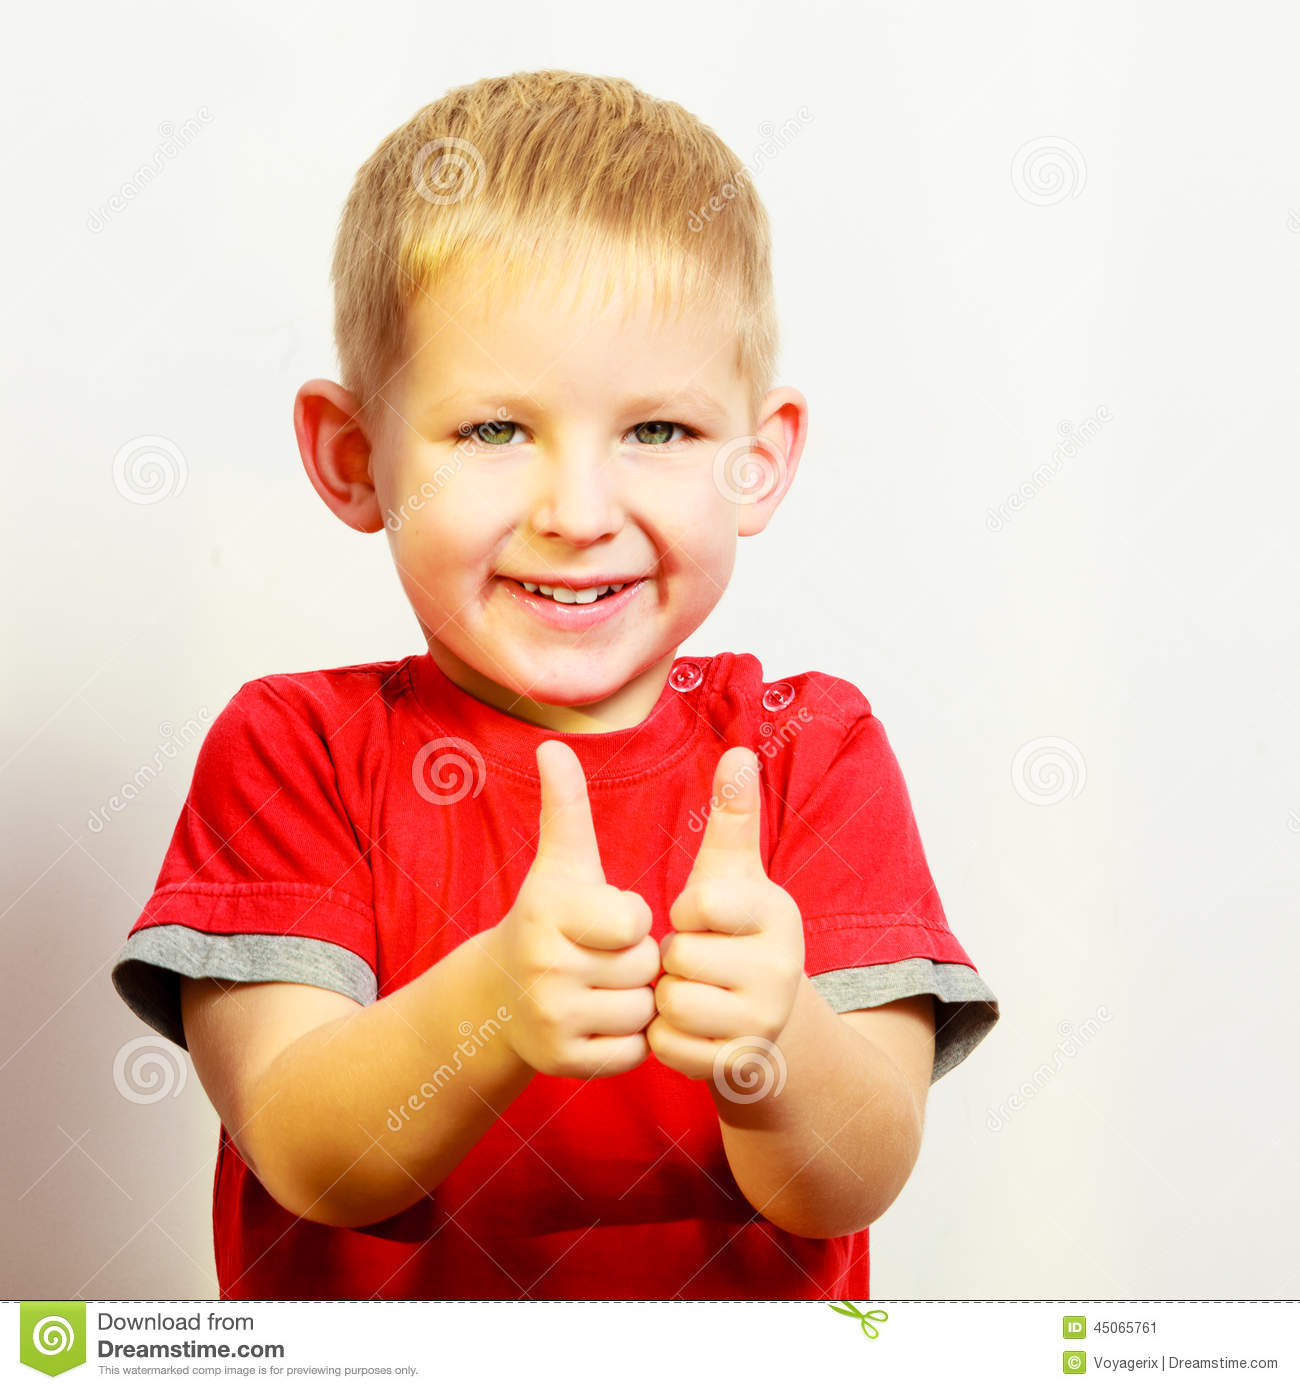 Little Boy Showing Thumb Up Success Hand Sign Gesture